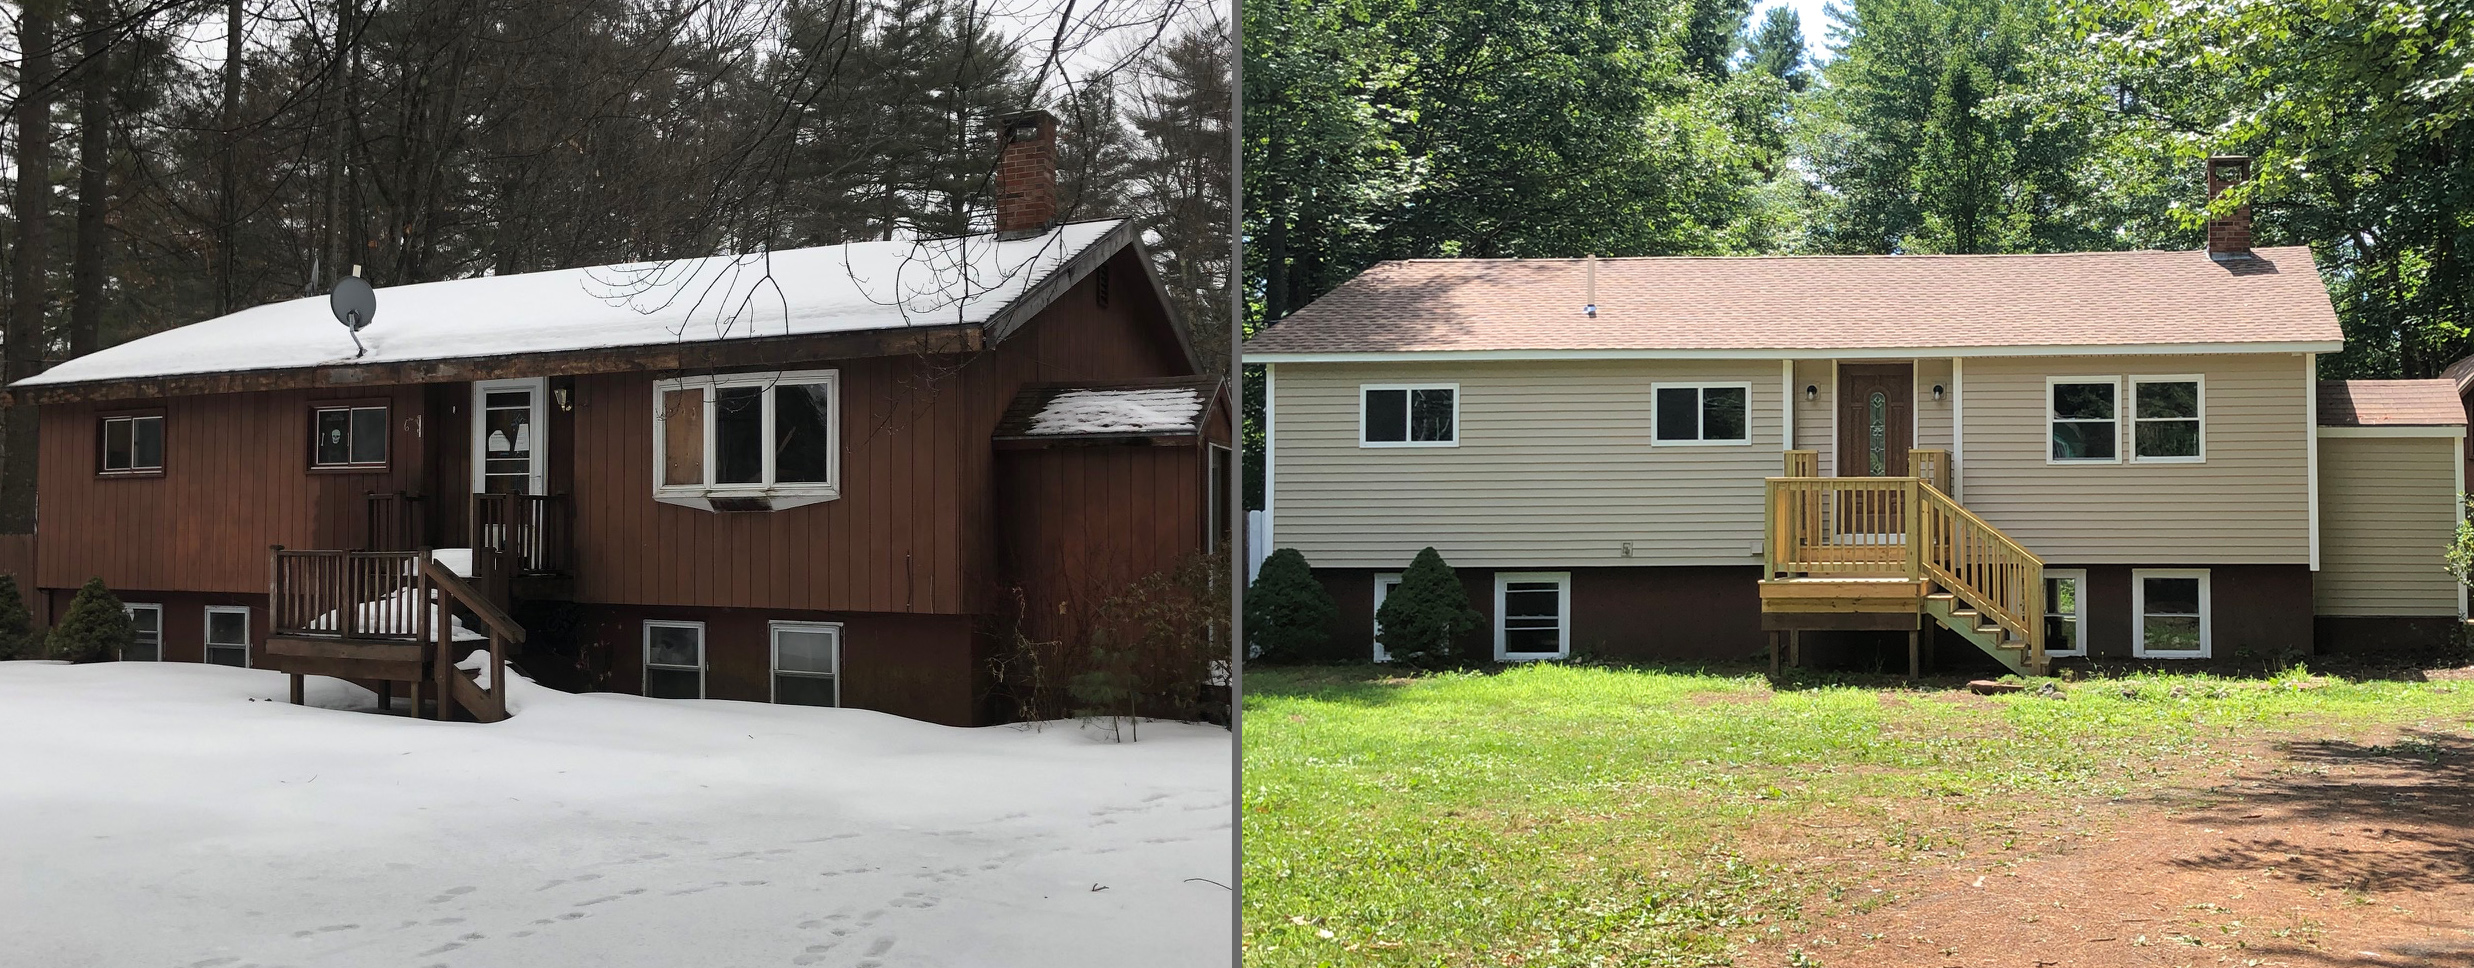 sweat equity -before/after home